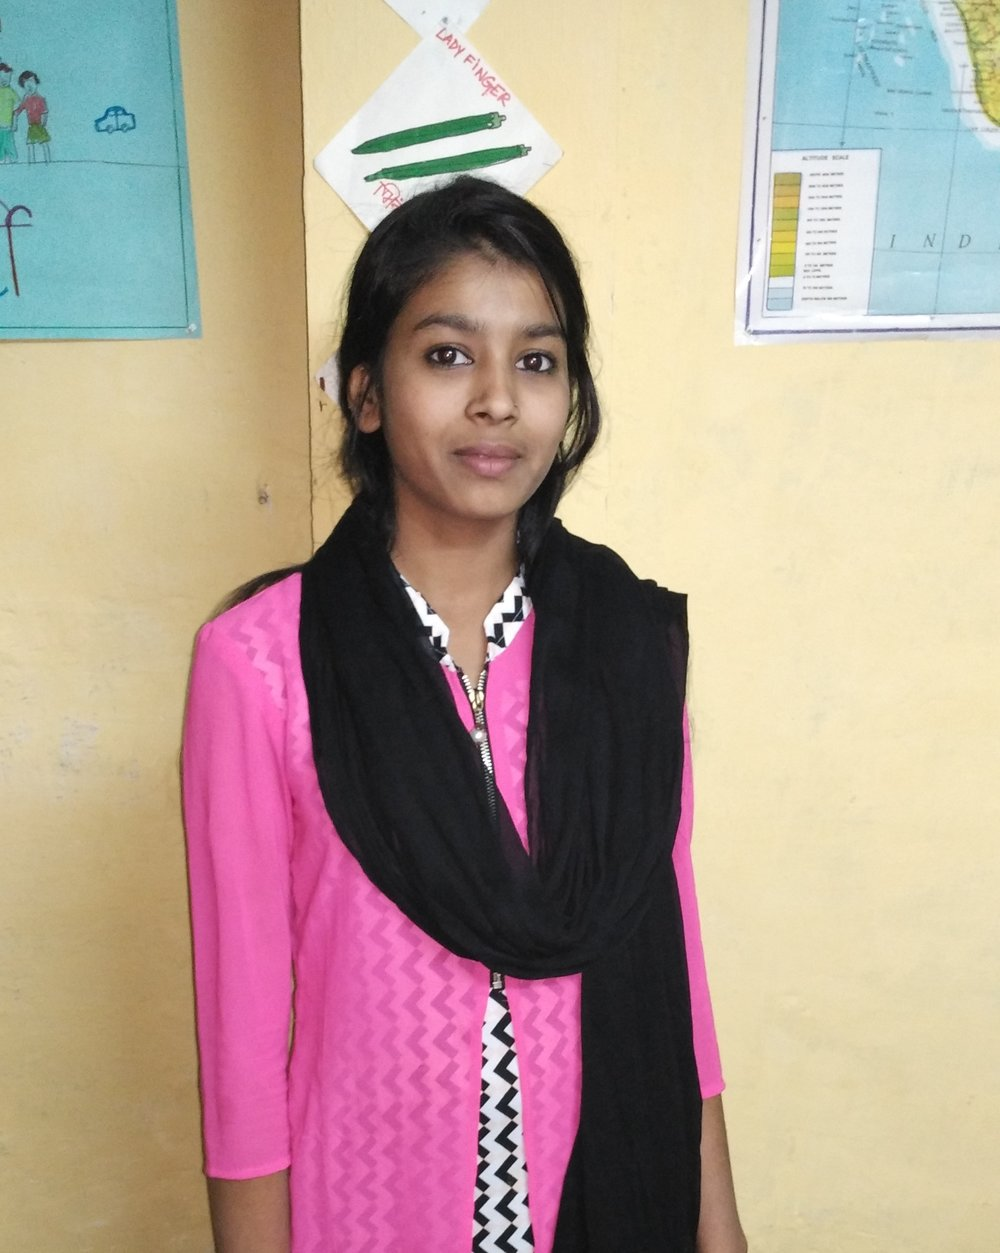 "Huma - Huma is 15 years old and studies in class 9. She has been working with TYPF since 2012. In 2013, Huma was a leader in a project called ""Aas Paas ki Saphaai"" (Cleaning our surroundings), which was run in her community. Since 2014, Huma has been a Youth Leader in TYPF's Blending Spectrum programme. She has been part of various programmes run by TYPF in her own community. She has also facilitated sessions on Life Skills with the other Youth Leaders."